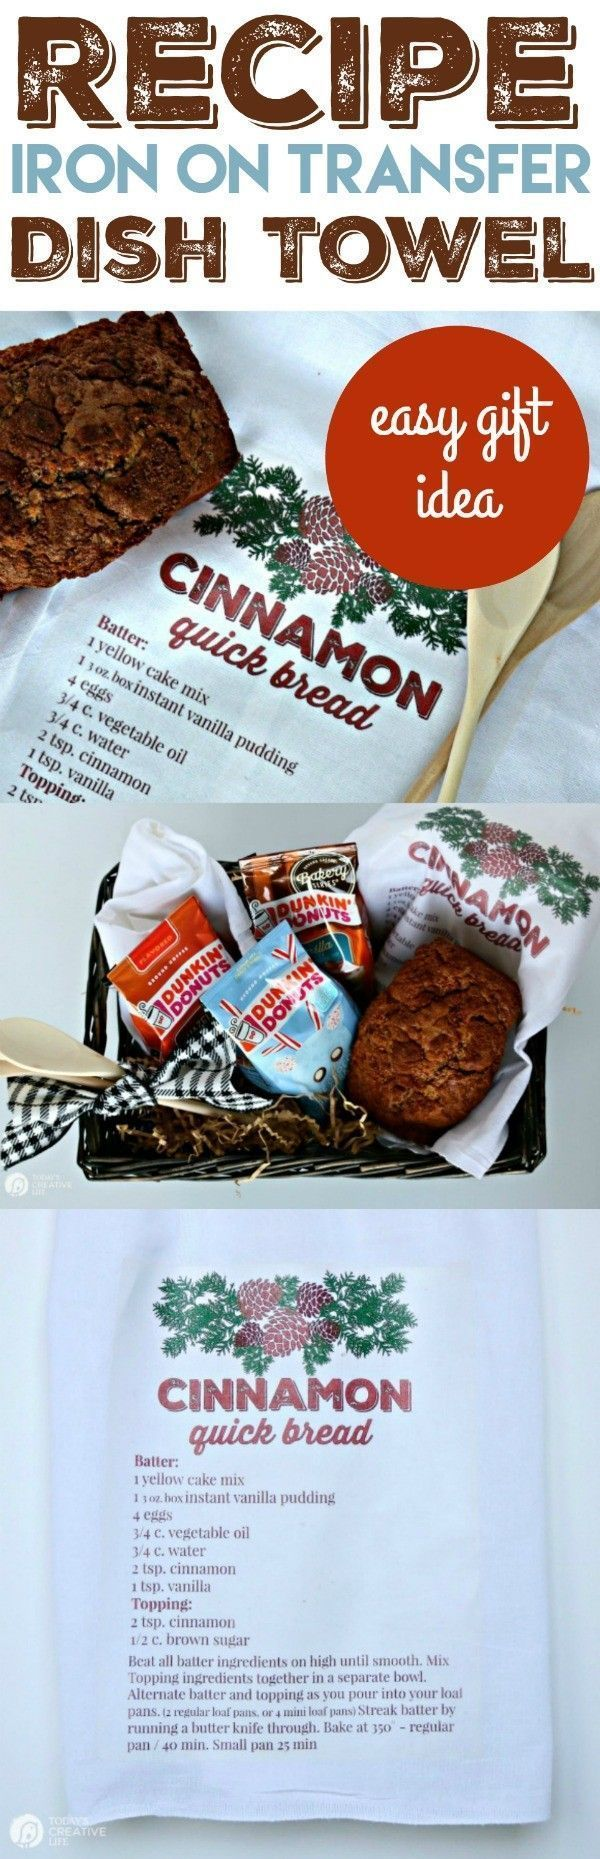 Recipe Iron On Transfer Dishtowel | Best gift idea ever! This easy gift is great for neighbor gifts, hostess gifts or anyone really! Who wouldn't love your favorite recipe printed on a dishtowel? Iron On Transfers for the win! Create a gift basket with Du